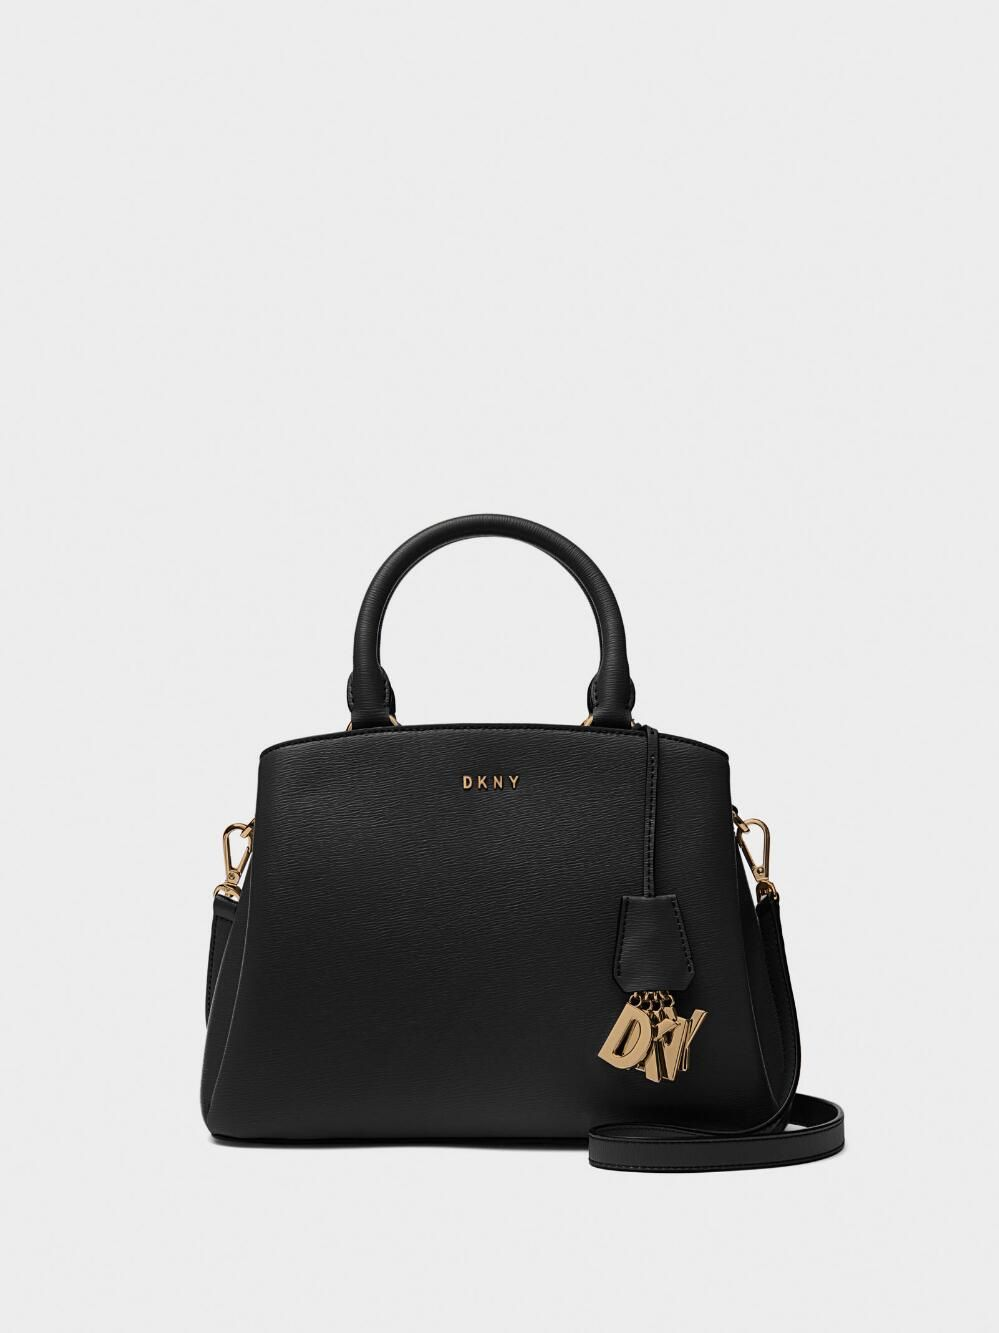 DKNY PAIGE LEATHER SATCHEL Cow Leather, Leather Satchel, Leather Briefcase,  Leather Bag 5ae4095357